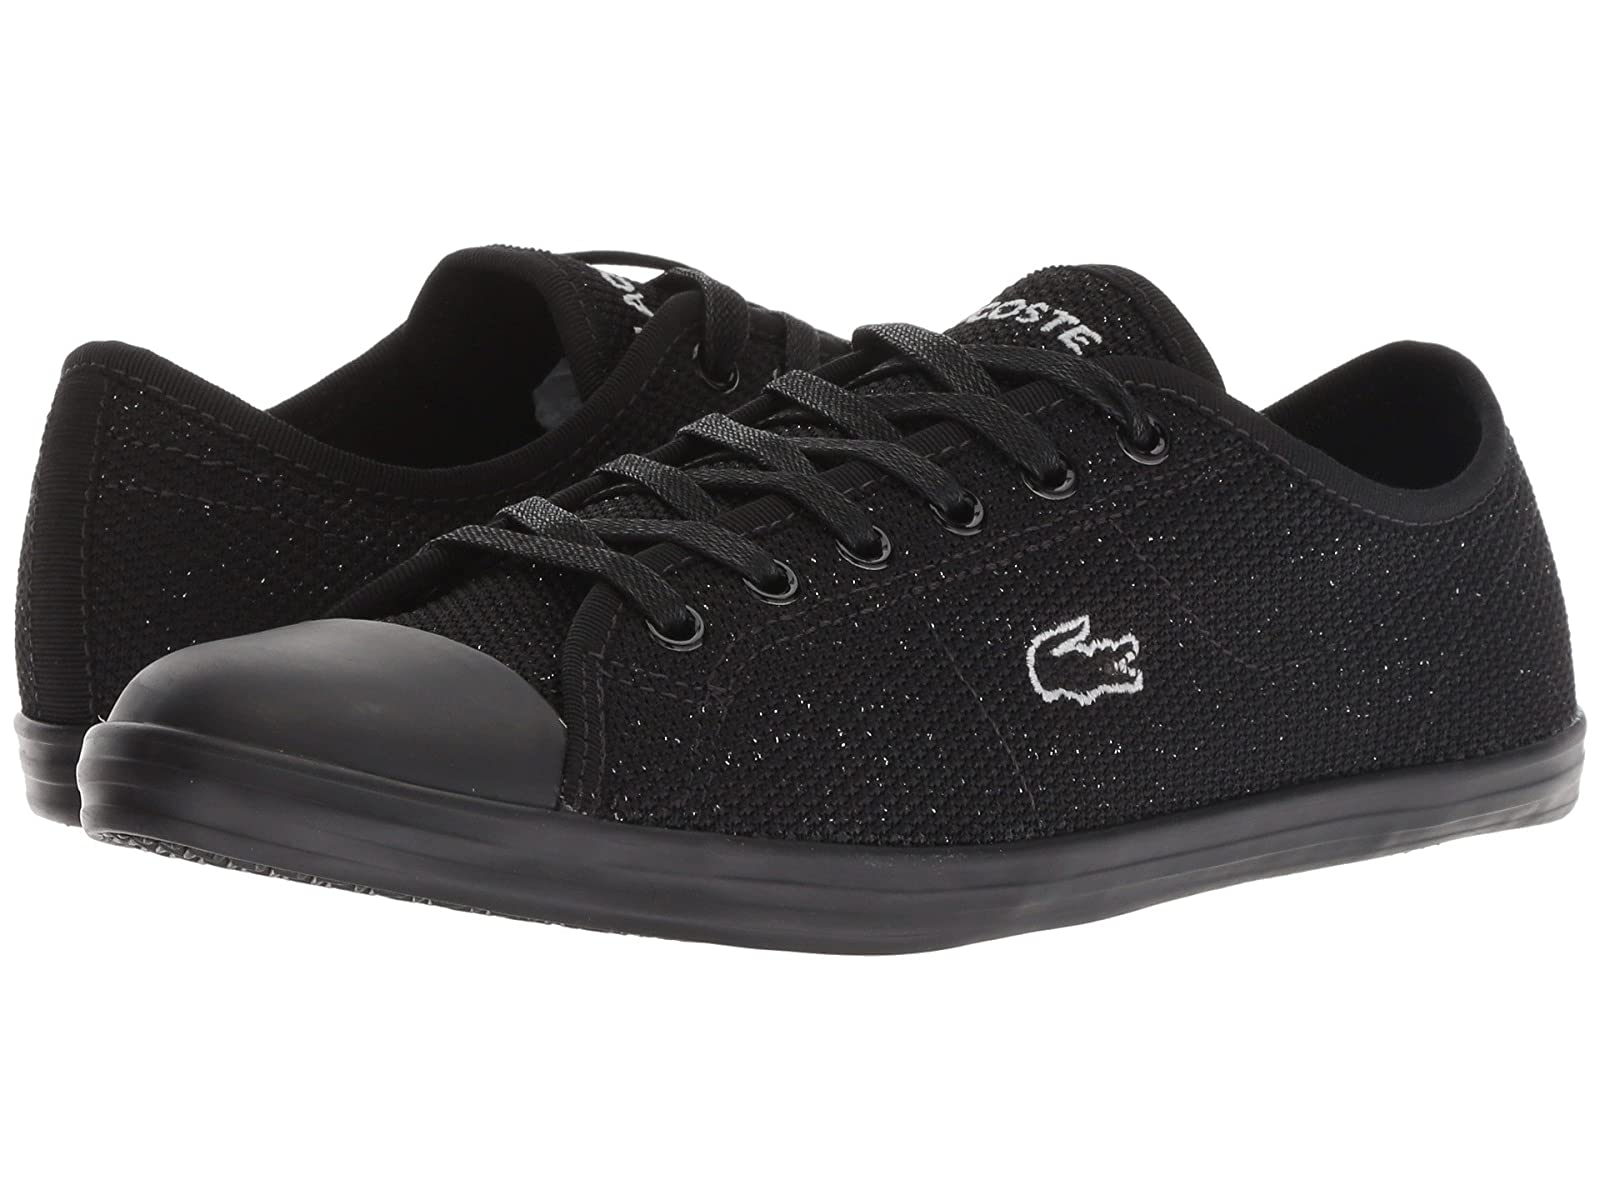 Lacoste Ziane Sneaker 318 4Atmospheric grades have affordable shoes